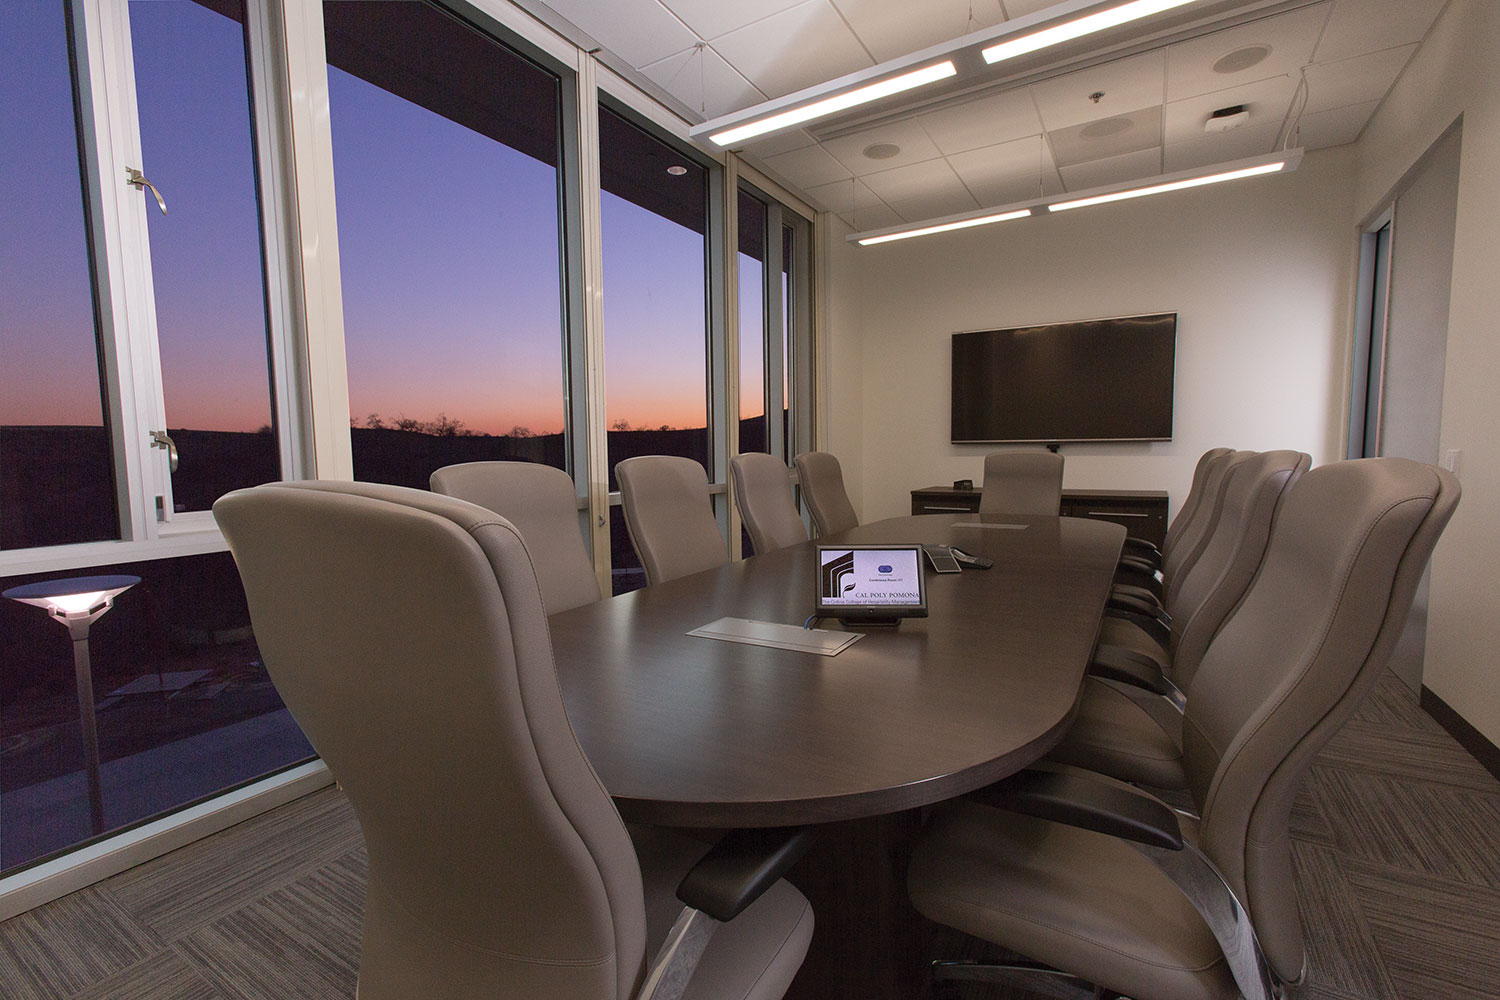 The conference room features a 70-inch display and video camera for meetings and interviews.